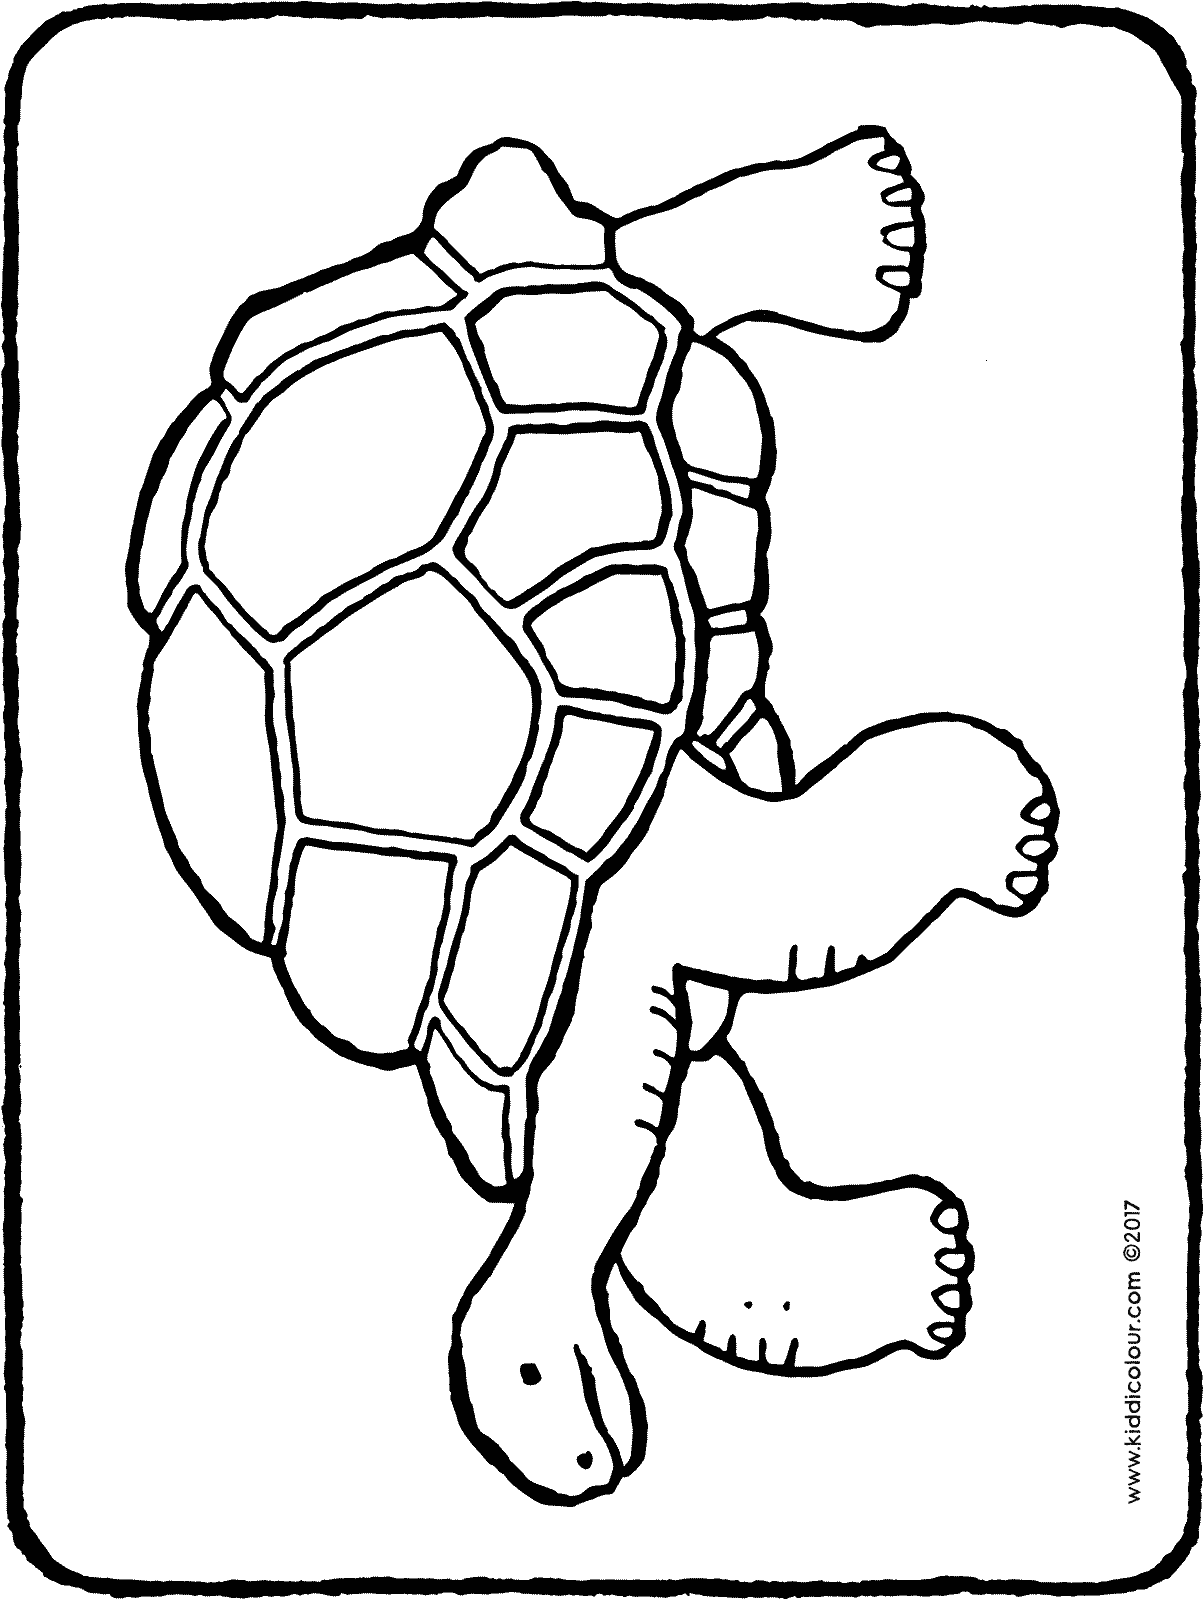 tortoise colouring pictures walking tortoise turtle coloring page wecoloringpagecom pictures colouring tortoise